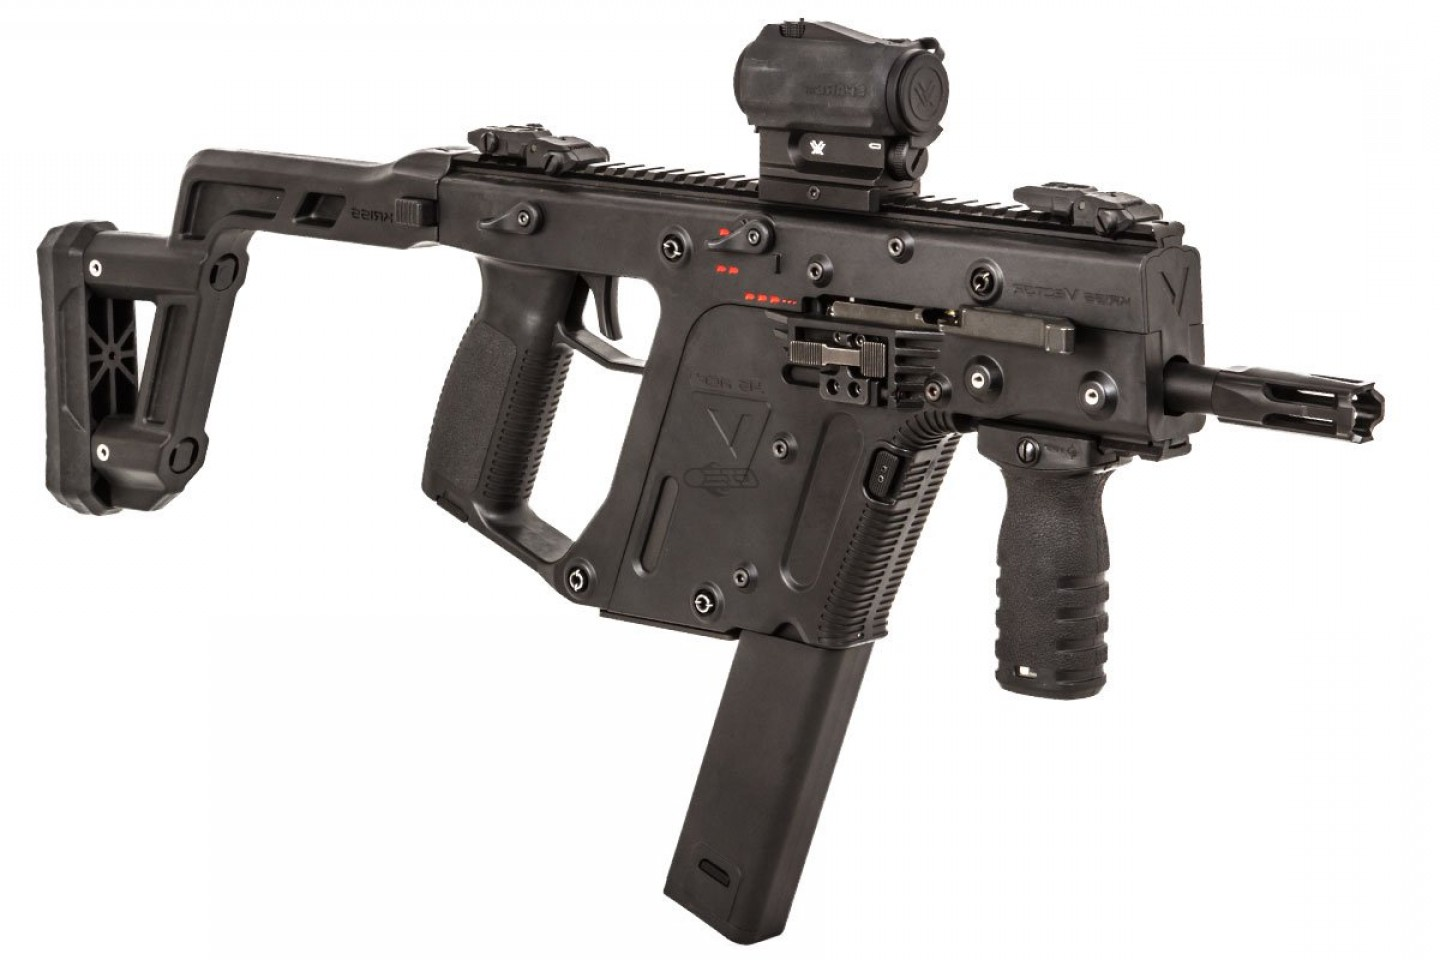 Kriss Vector AR-15 Stock Adapter: Krytac Kriss Vector Smg Aeg Airsoft Gun Black Choose An Option